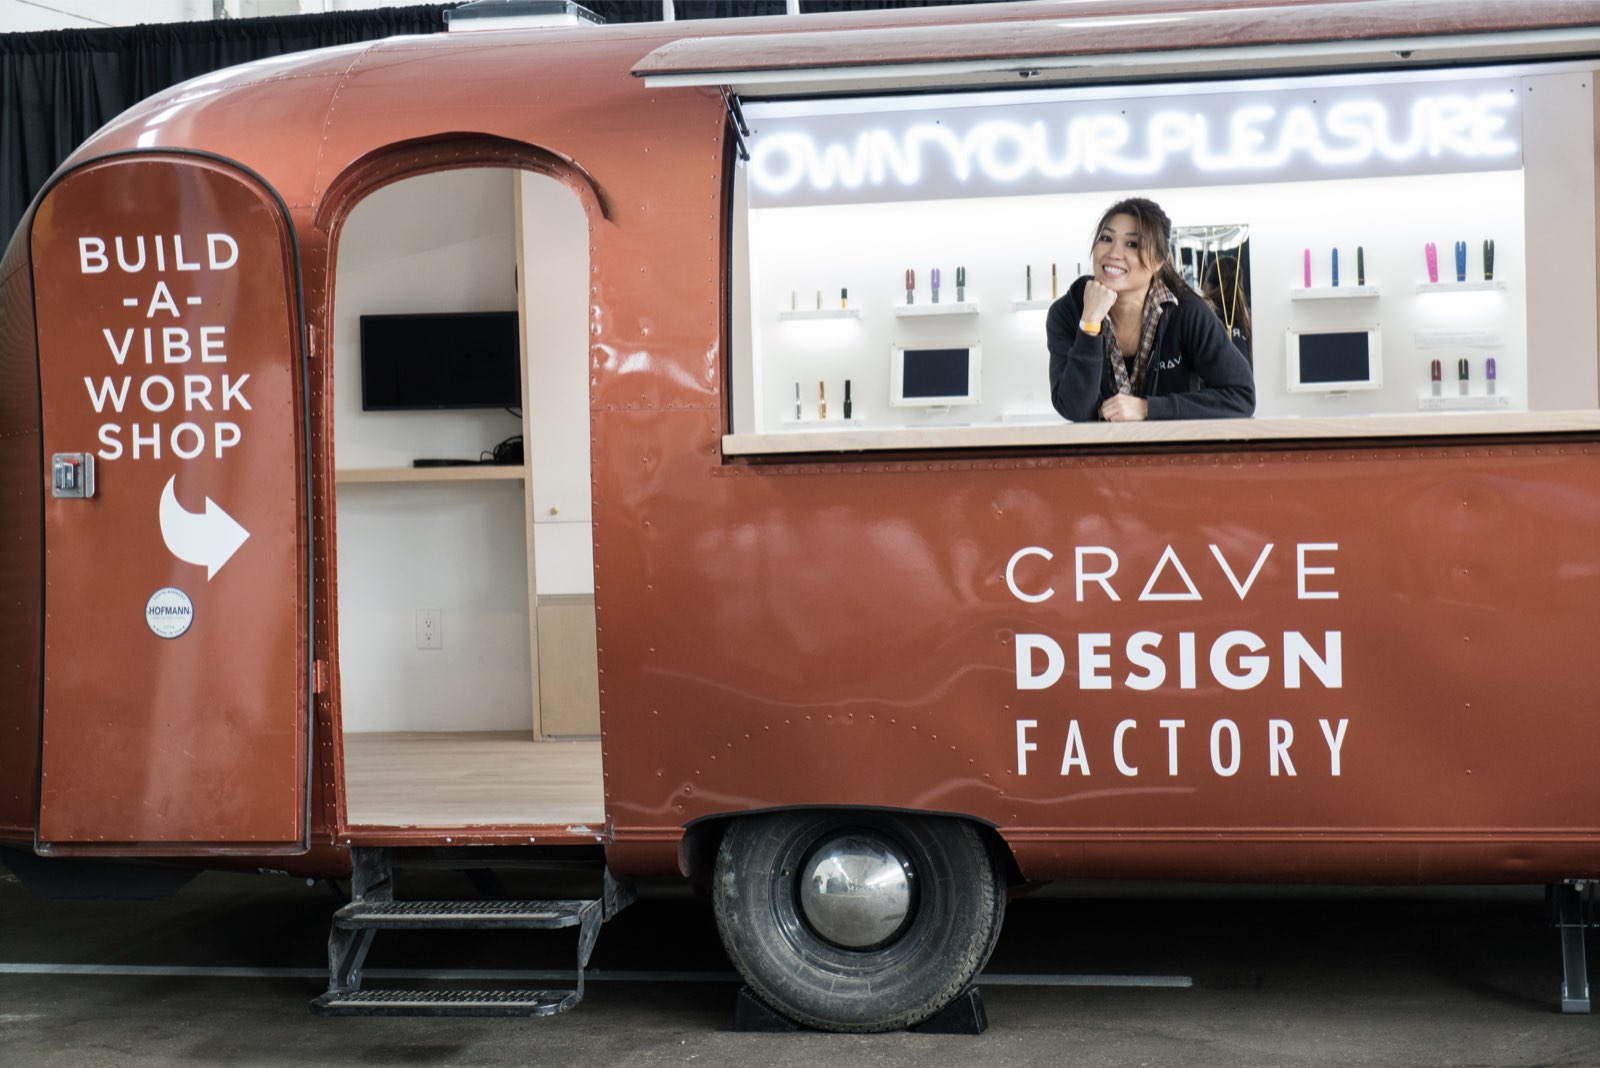 Build-a-Vibe with Crave